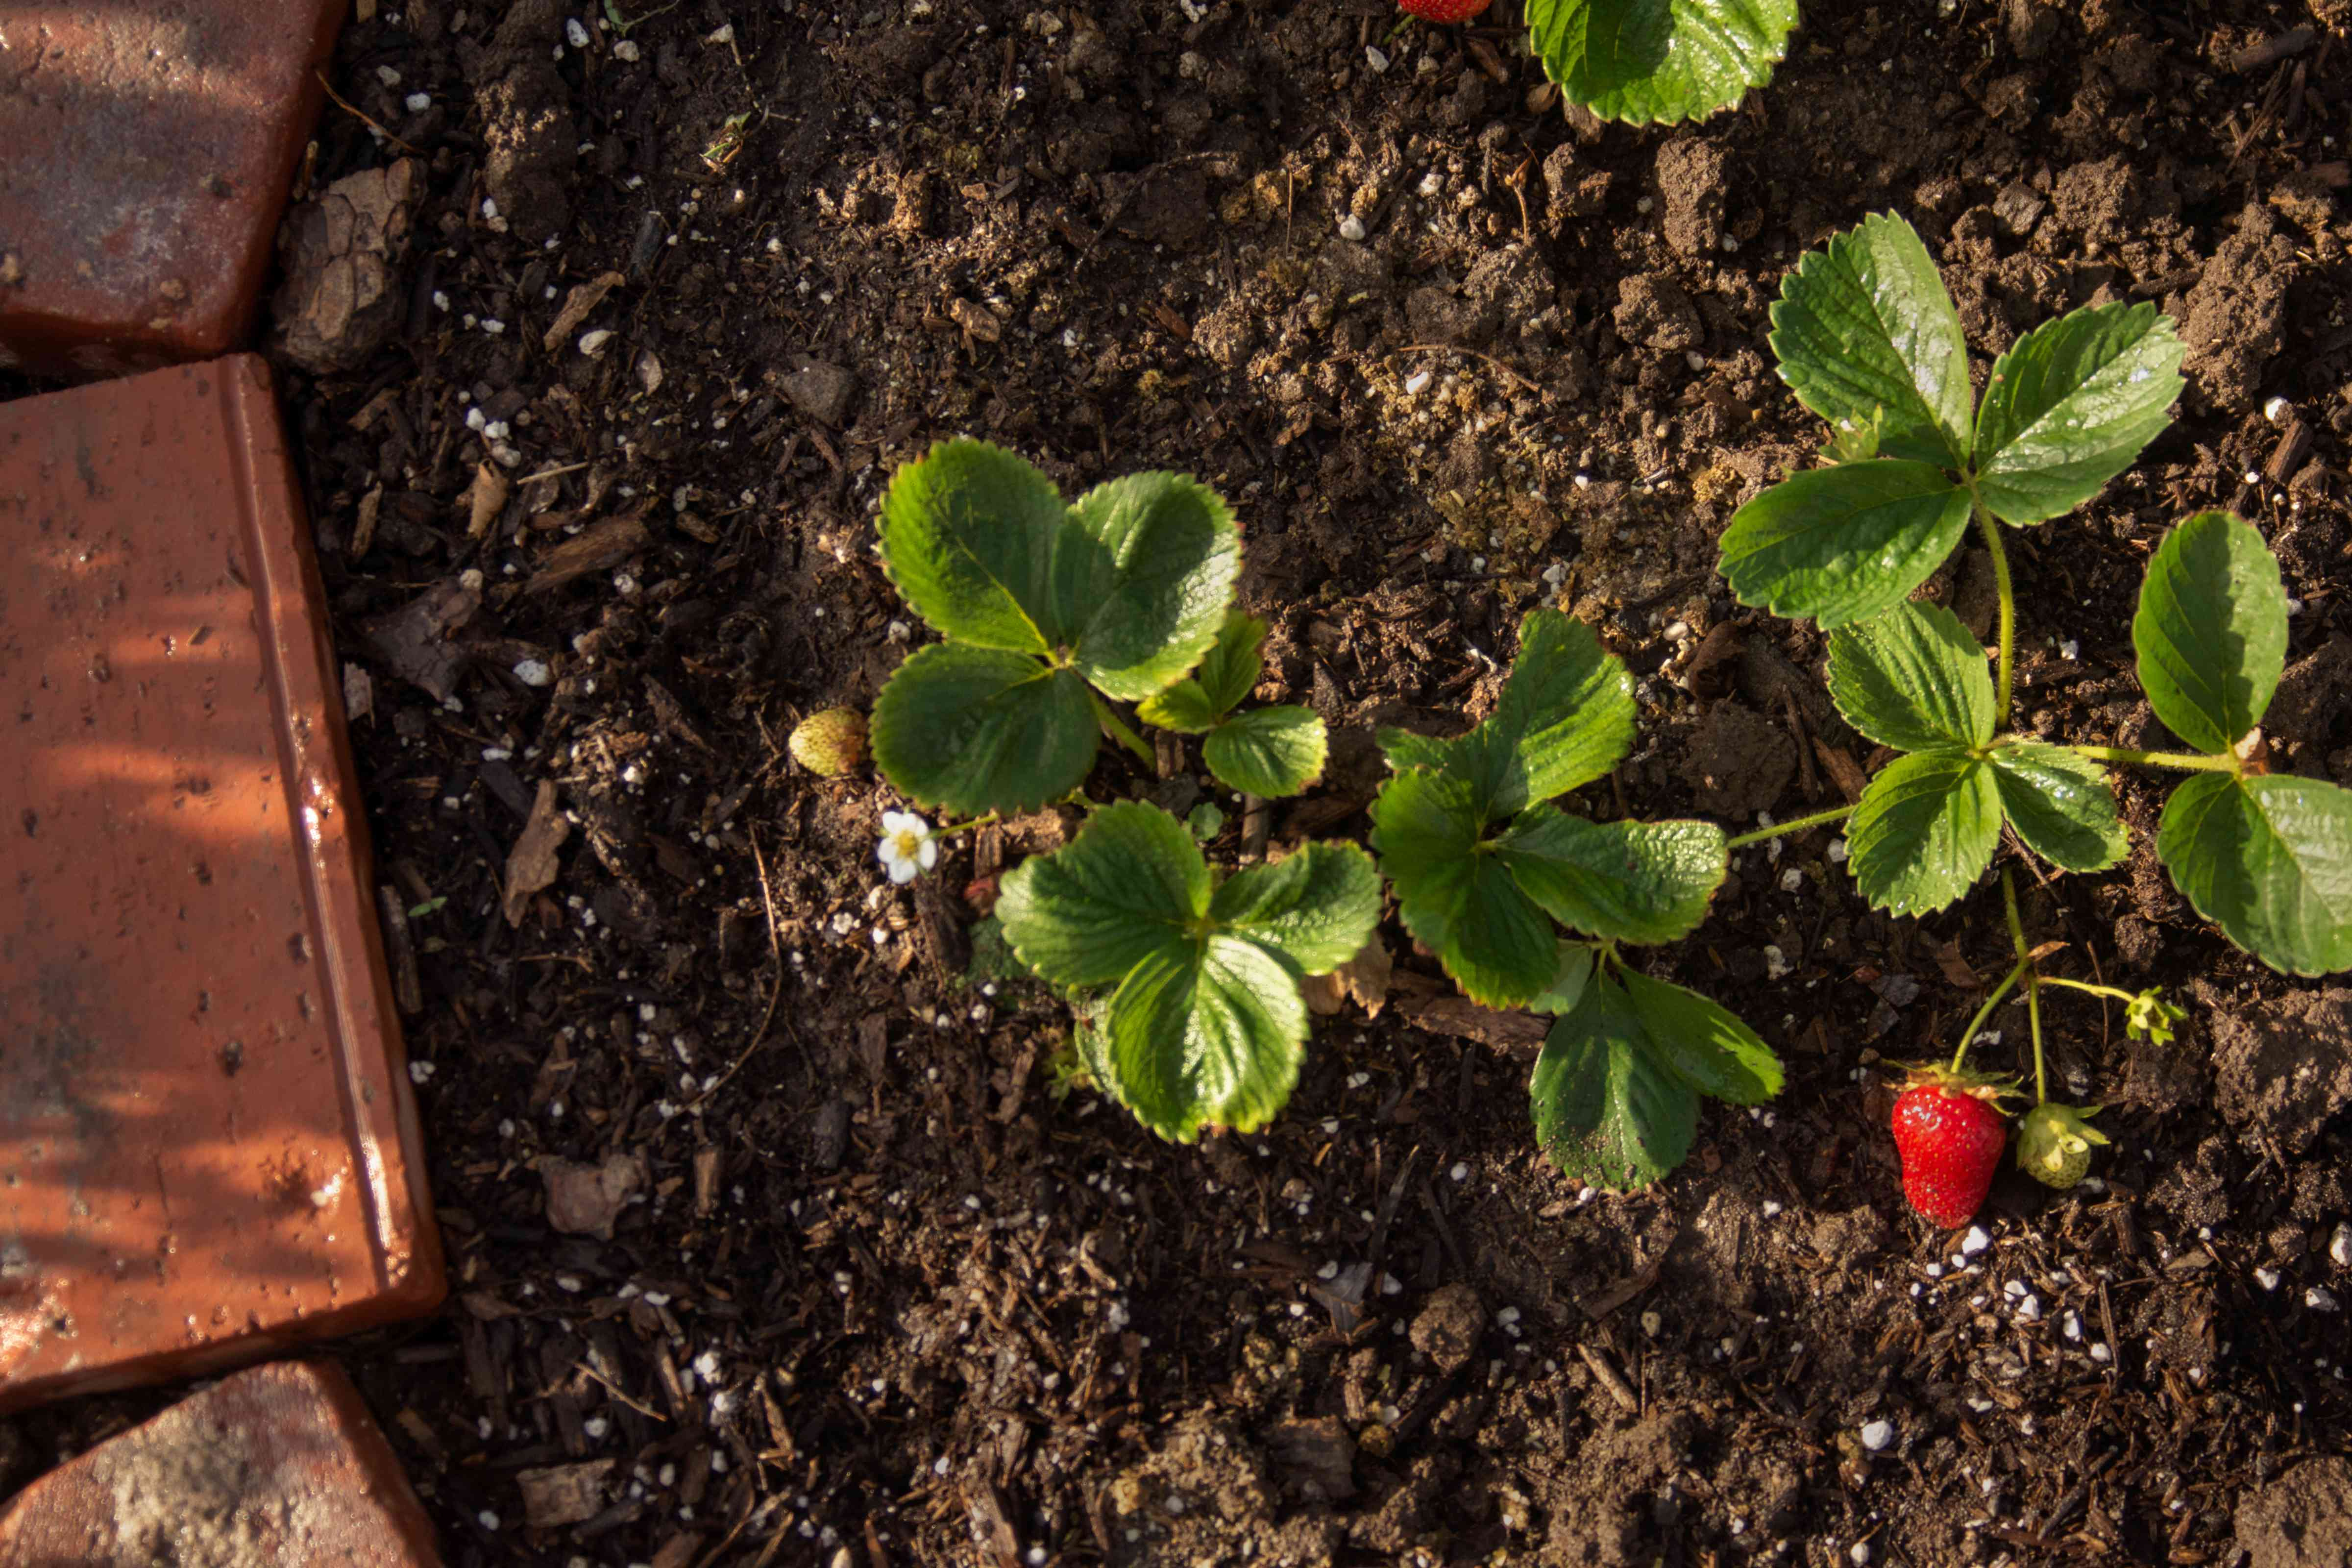 Strawberry plants with red fruit in garden bed spaced apart by 6 inches